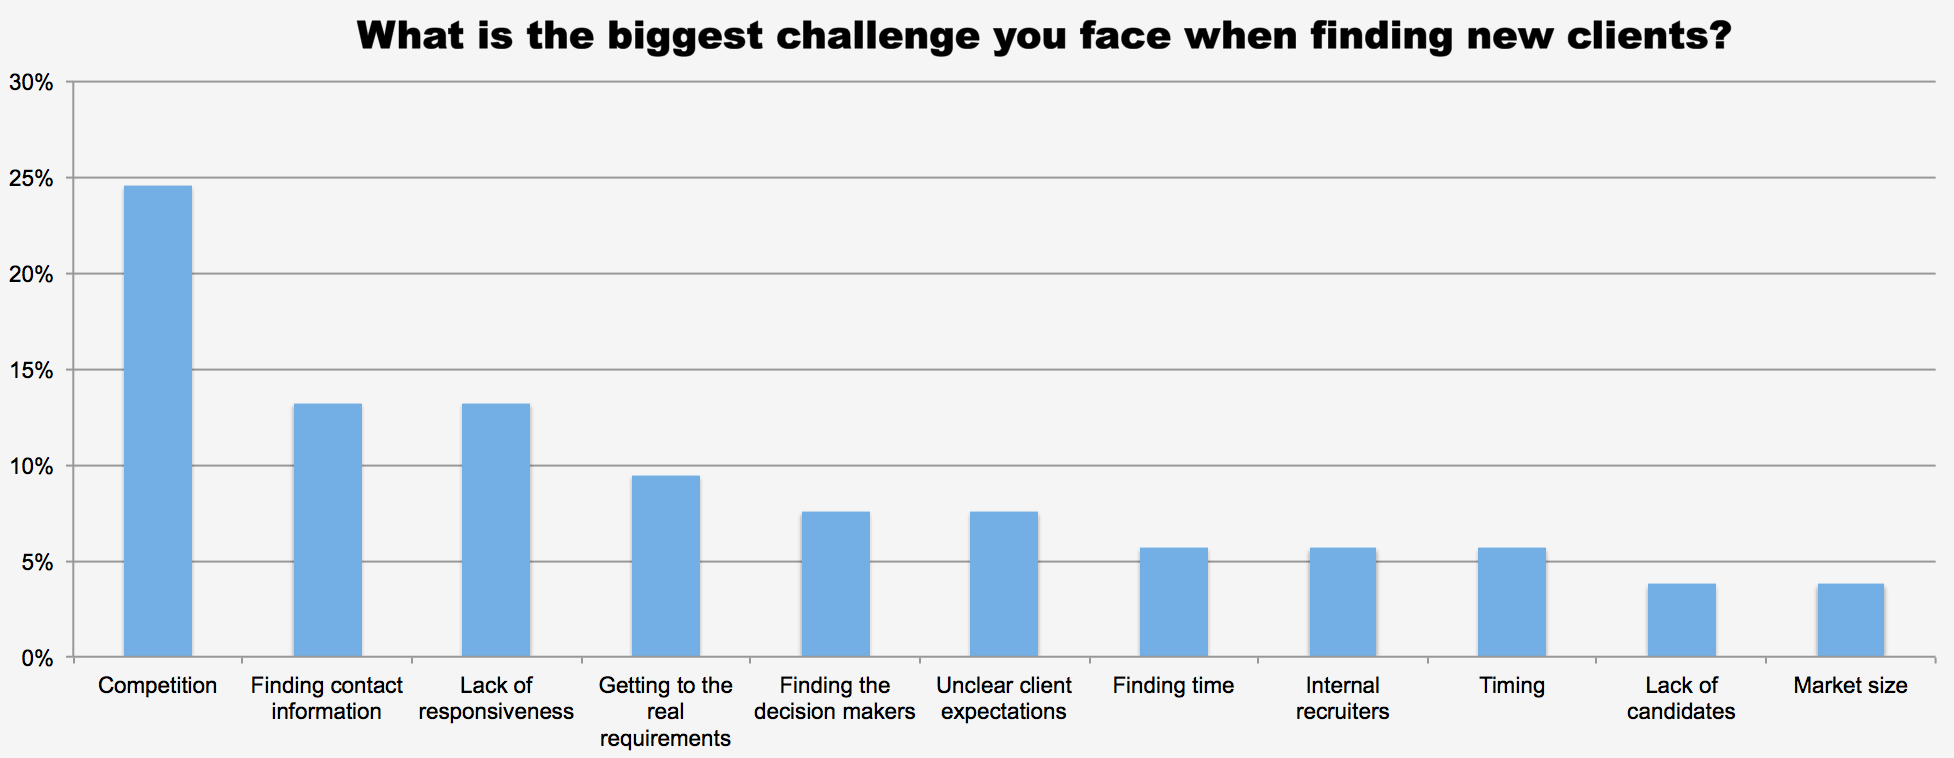 What is the biggest challenge you face when finding new clients?